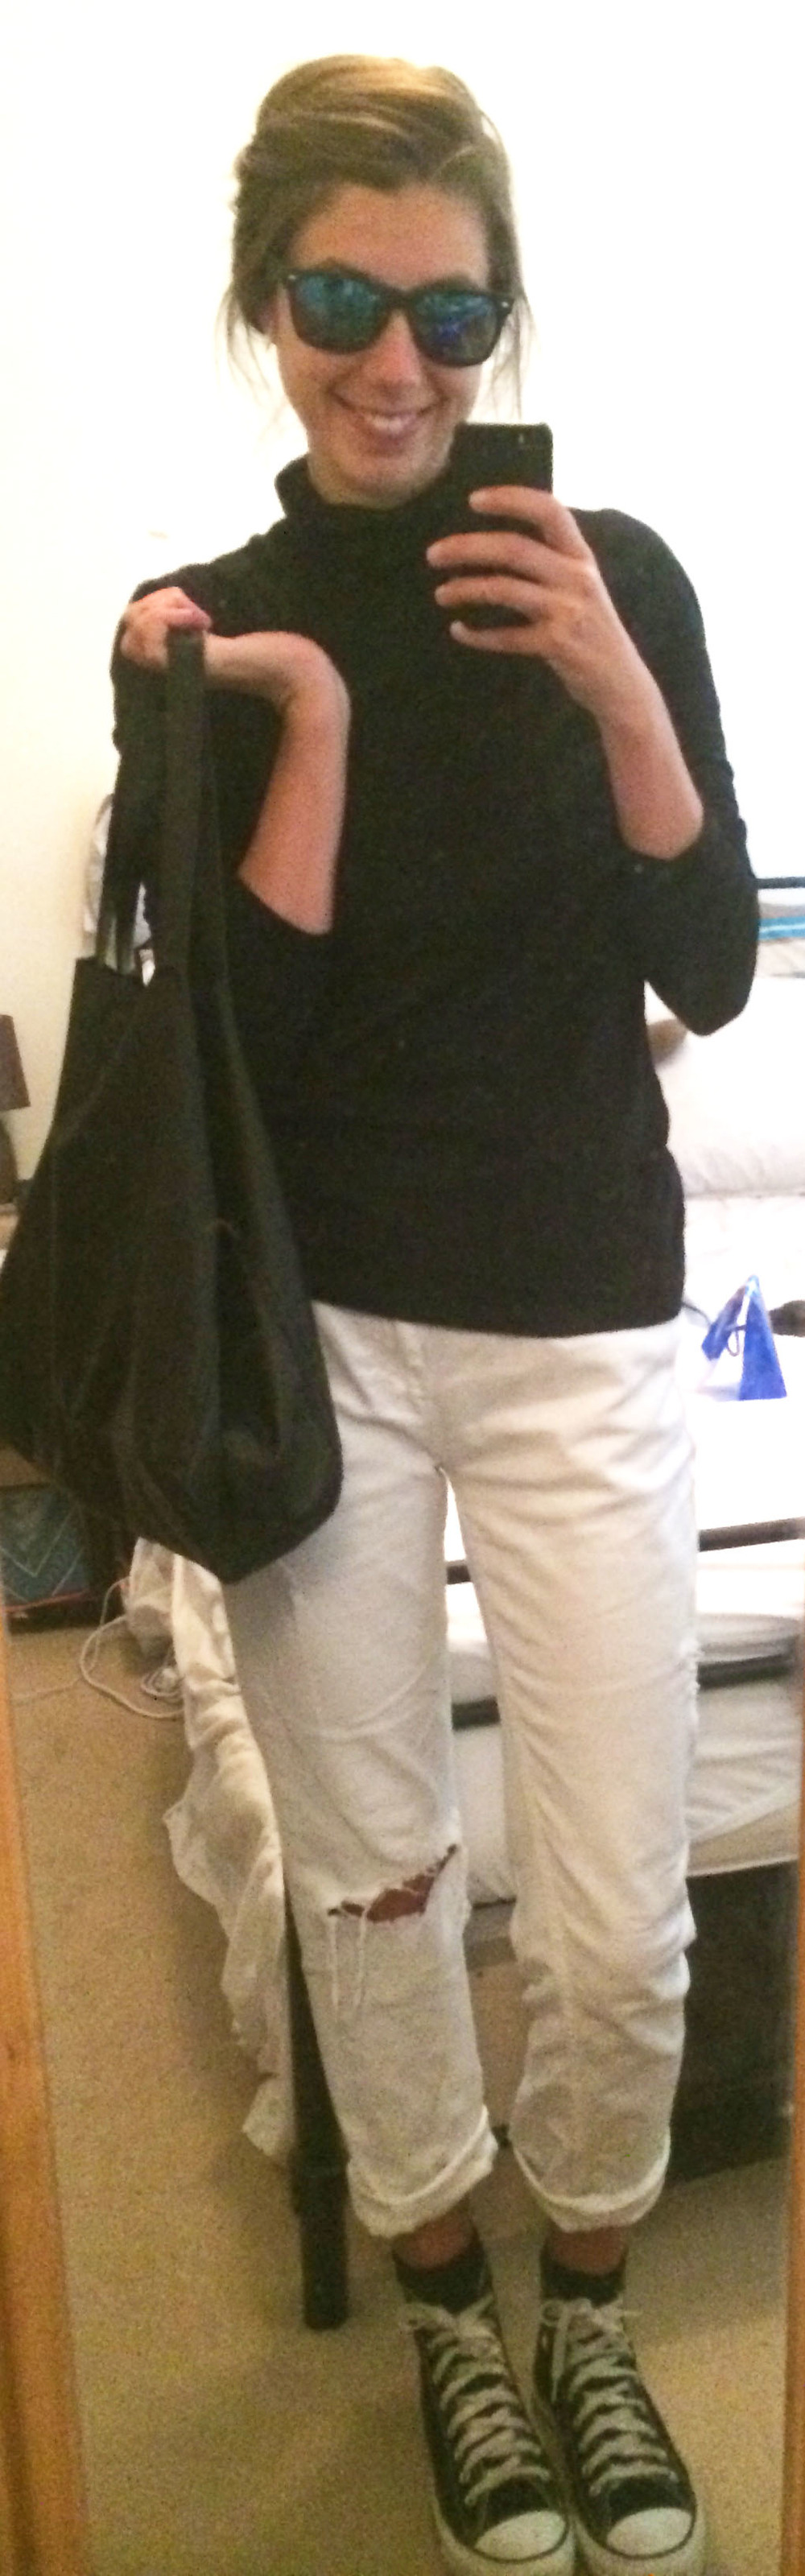 White Boyfriend Jeans ,  Black Converse,   Black Tote ,  Mirrored Sunglasses , $2 Discount Store Turtleneck